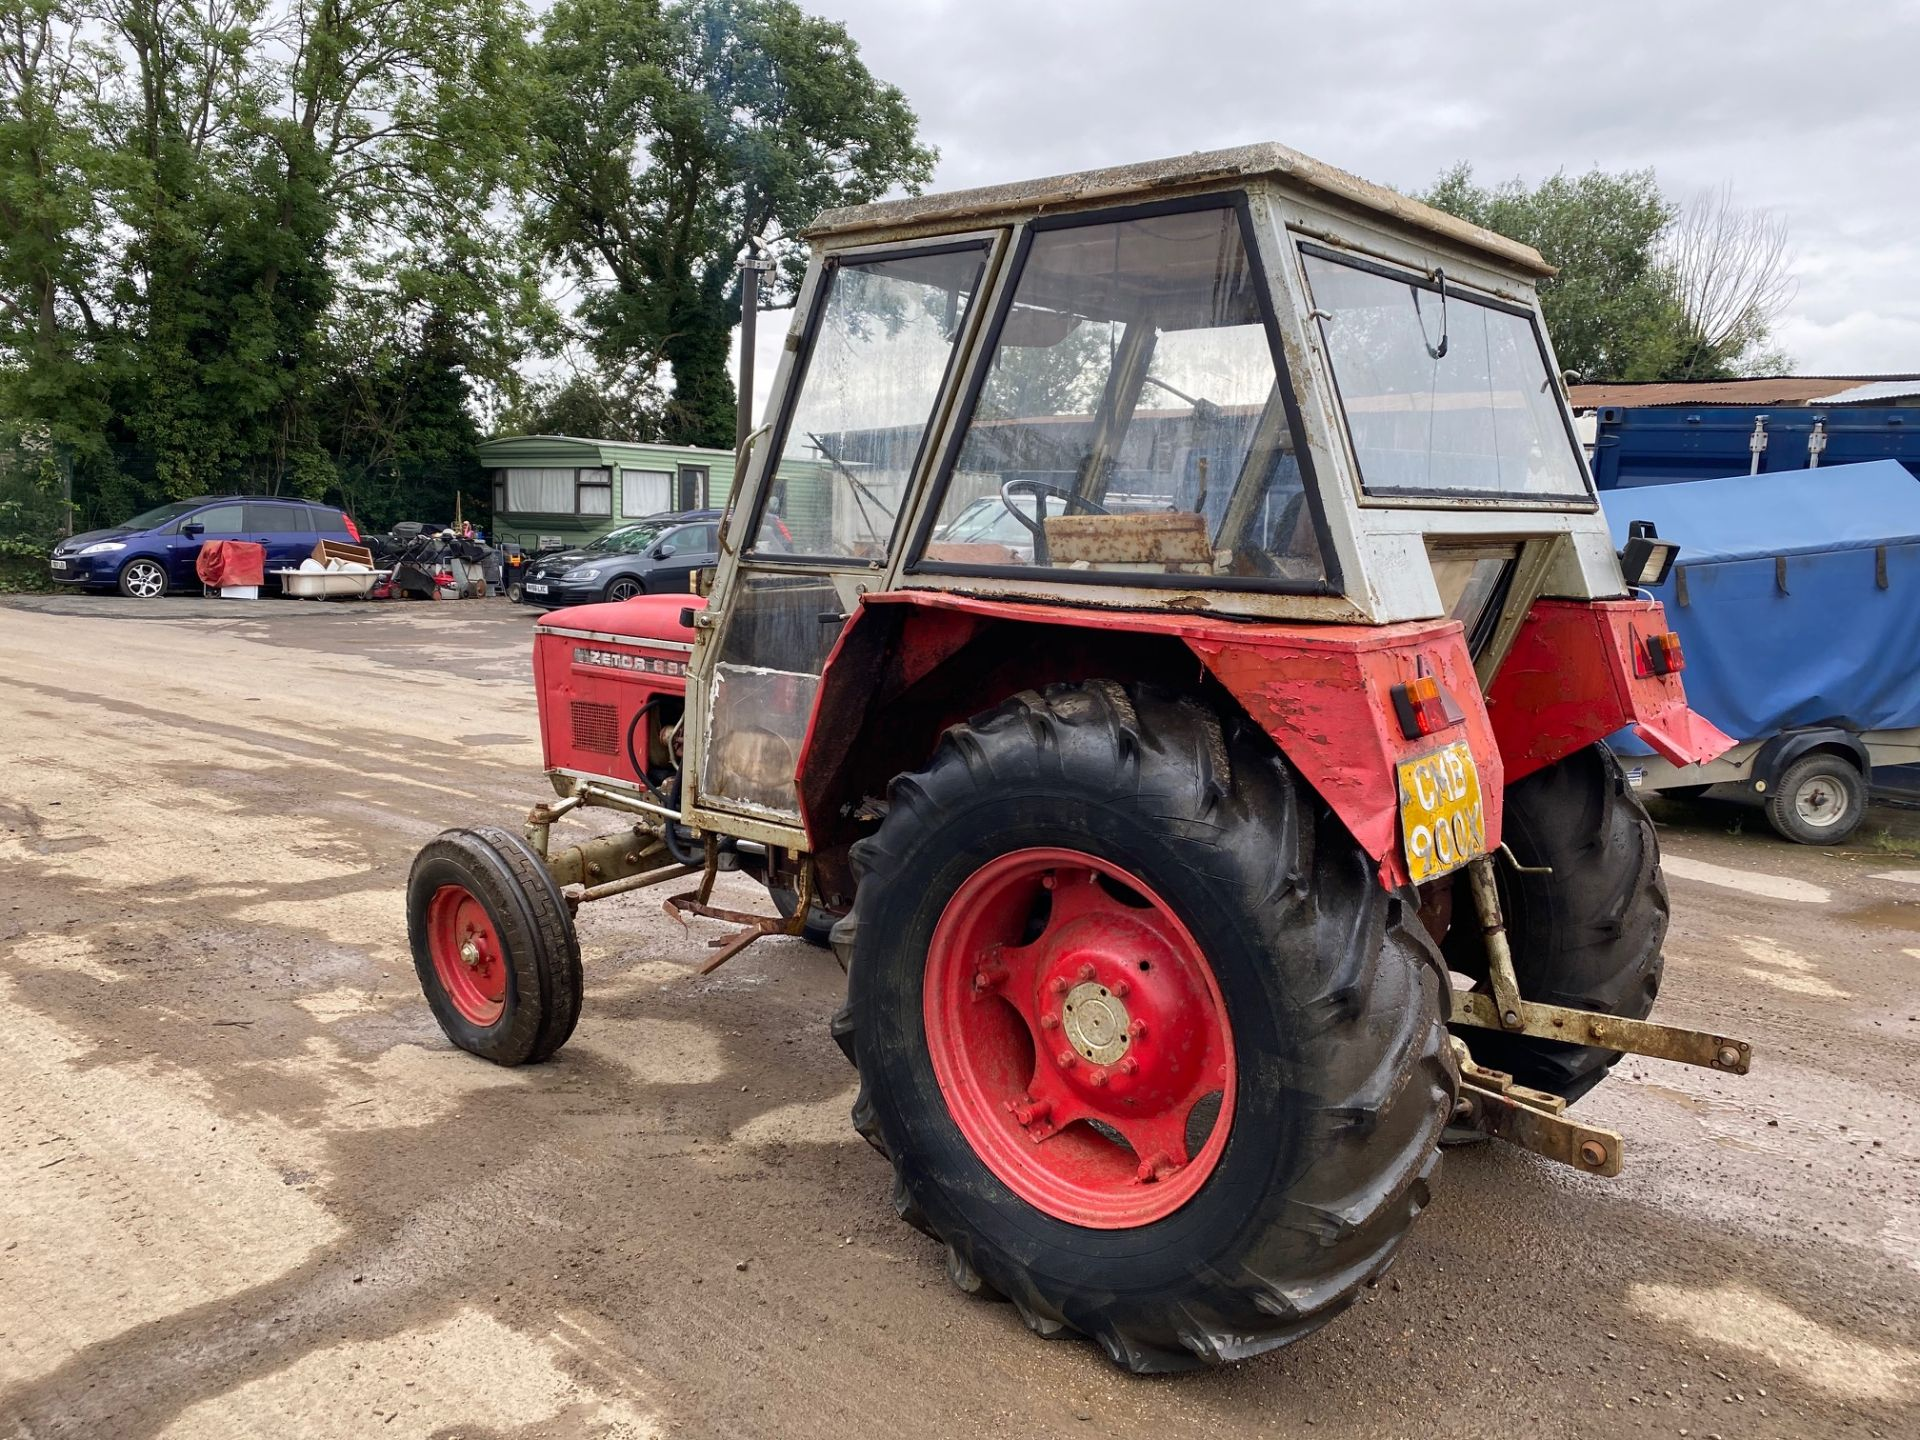 Lot 67 - ZETOR 6911 2WD TRACTOR, FULL CAB WITH HEATER, POWER STEERING, GOOD WORKING ORDER *PLUS VAT*